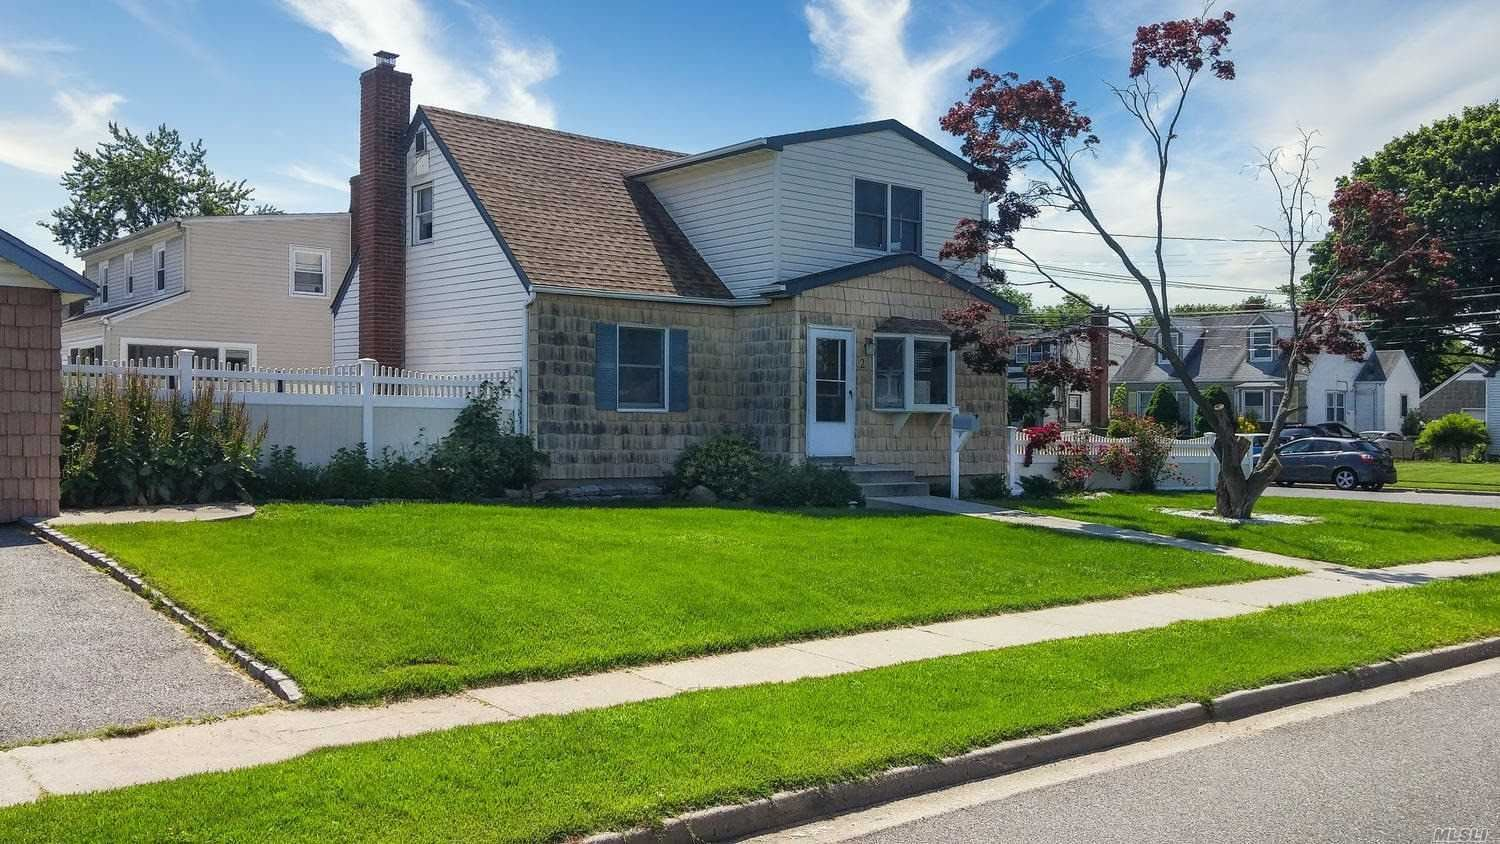 2 Robert Avenue, Massapequa, NY 11758 - MLS#: 3192718